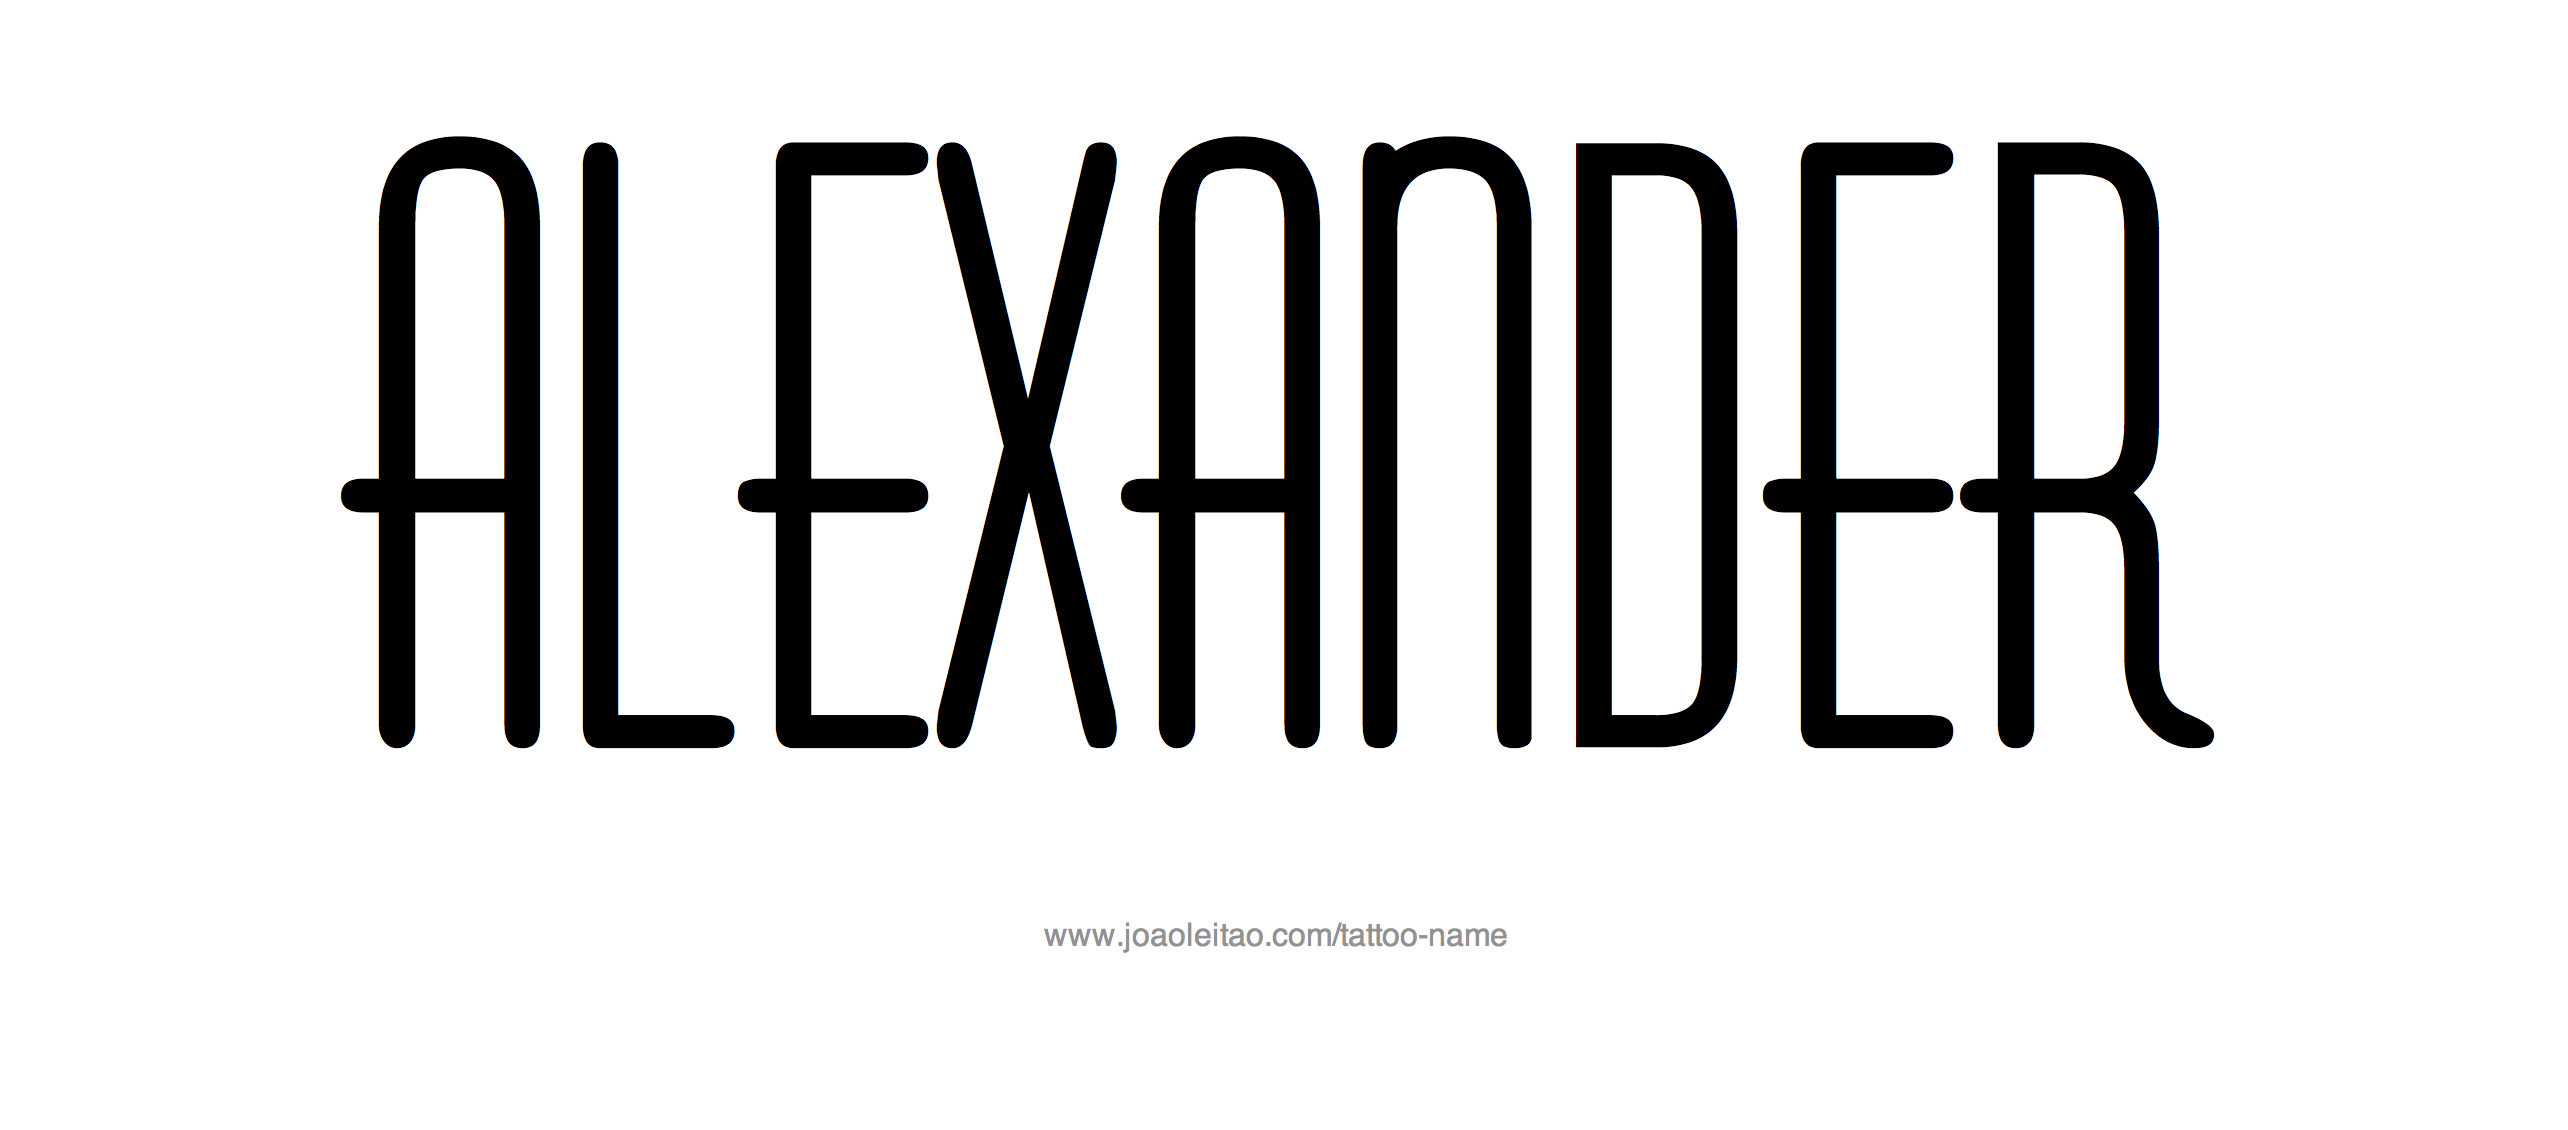 Alexander Name Tattoo Designs